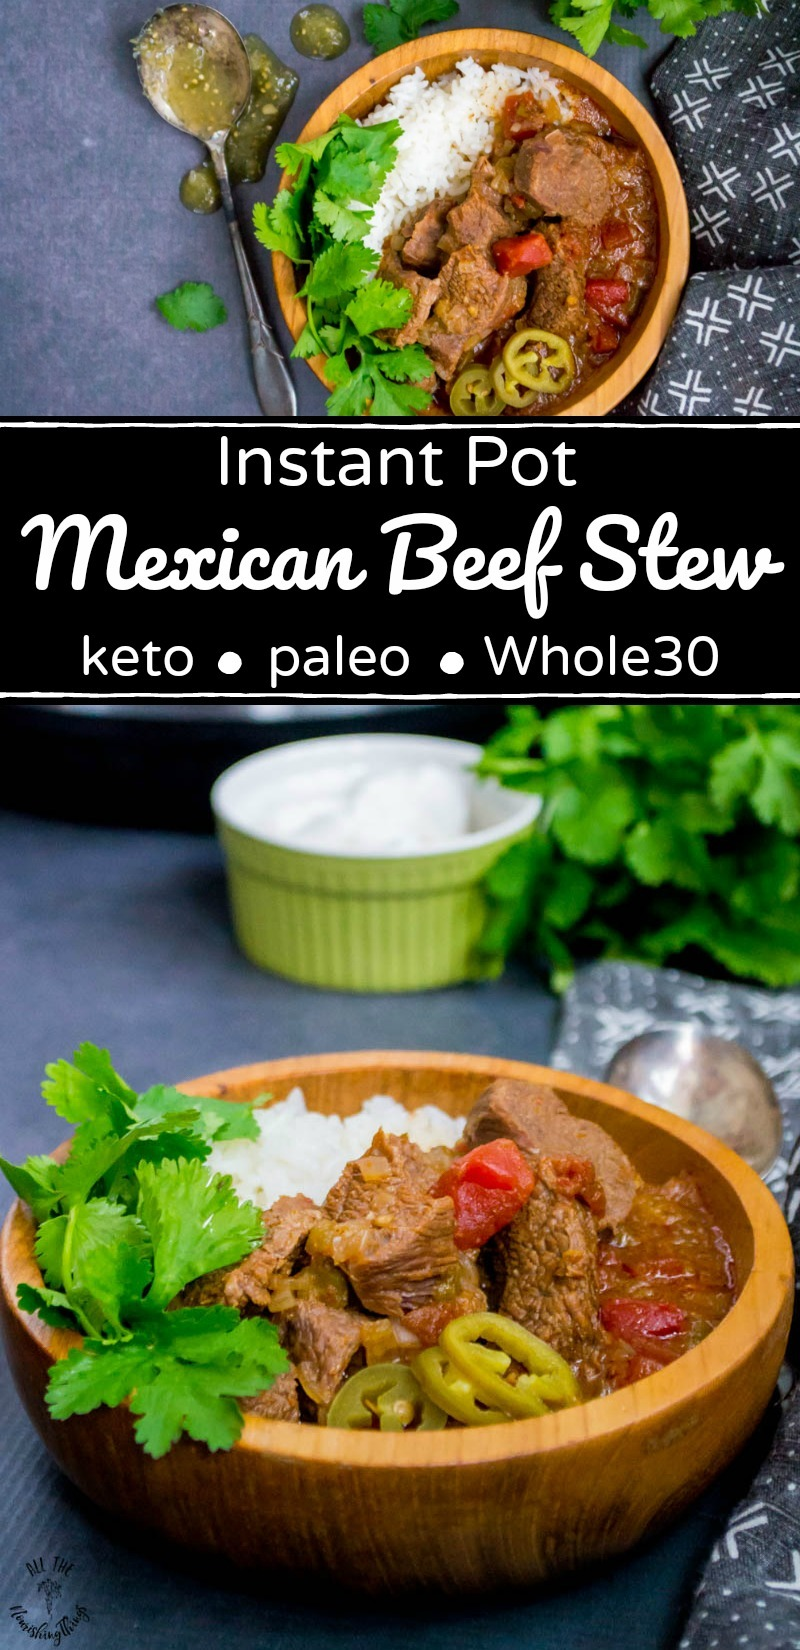 collage of 2 images of keto, paleo, whole30 instant pot mexican beef stew with text overlay